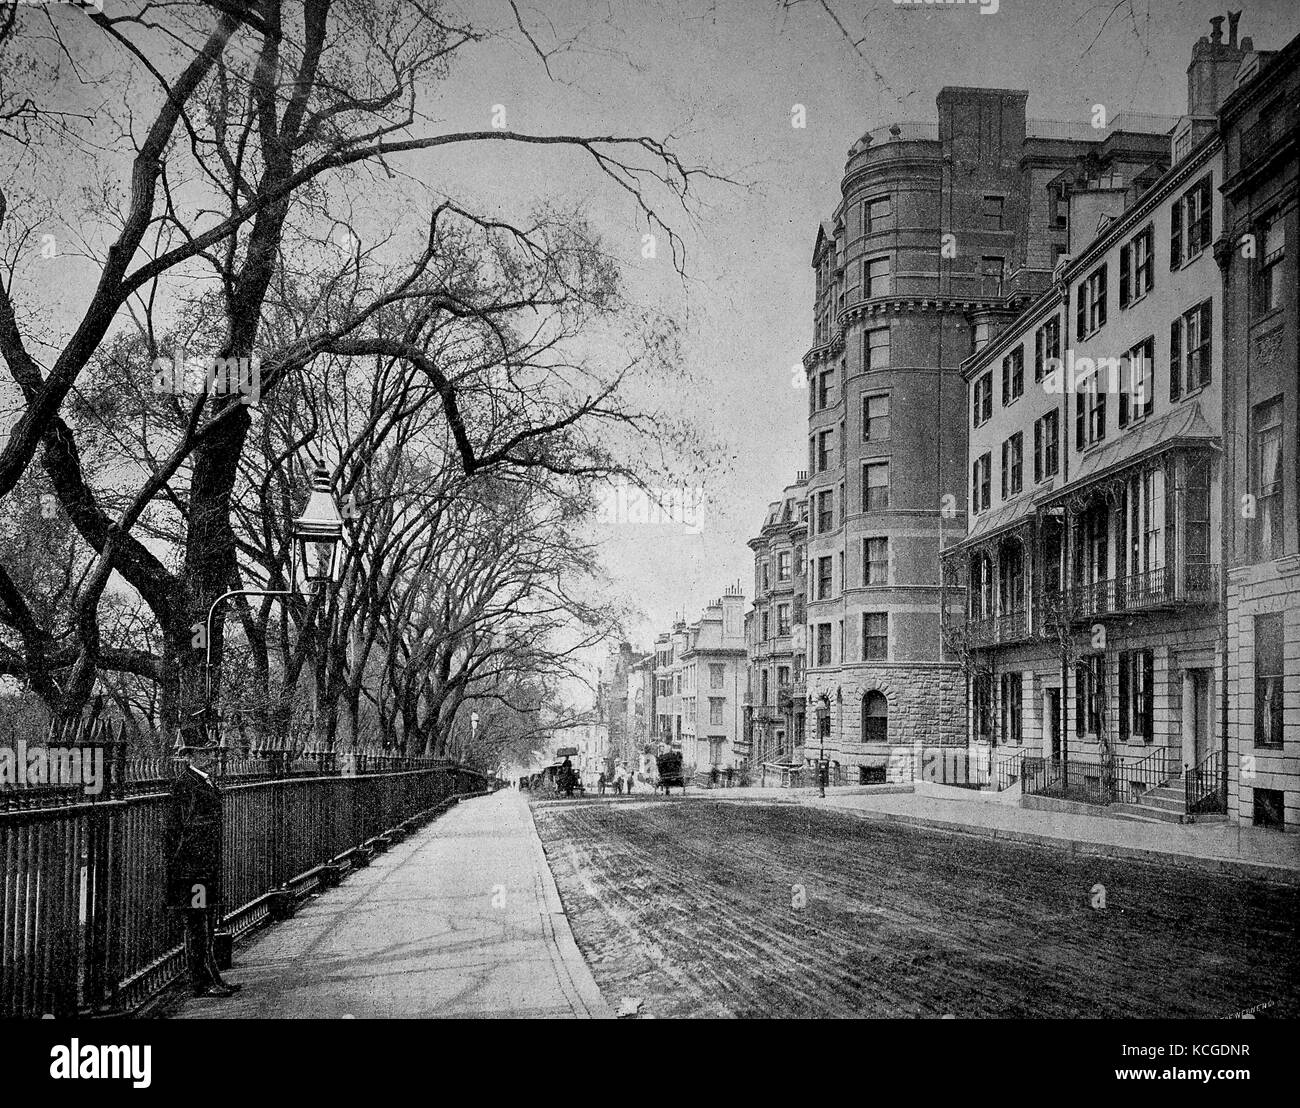 United States of America, building and street scene of Beacon Street in Boston, state of Massachussetts, digital - Stock Image